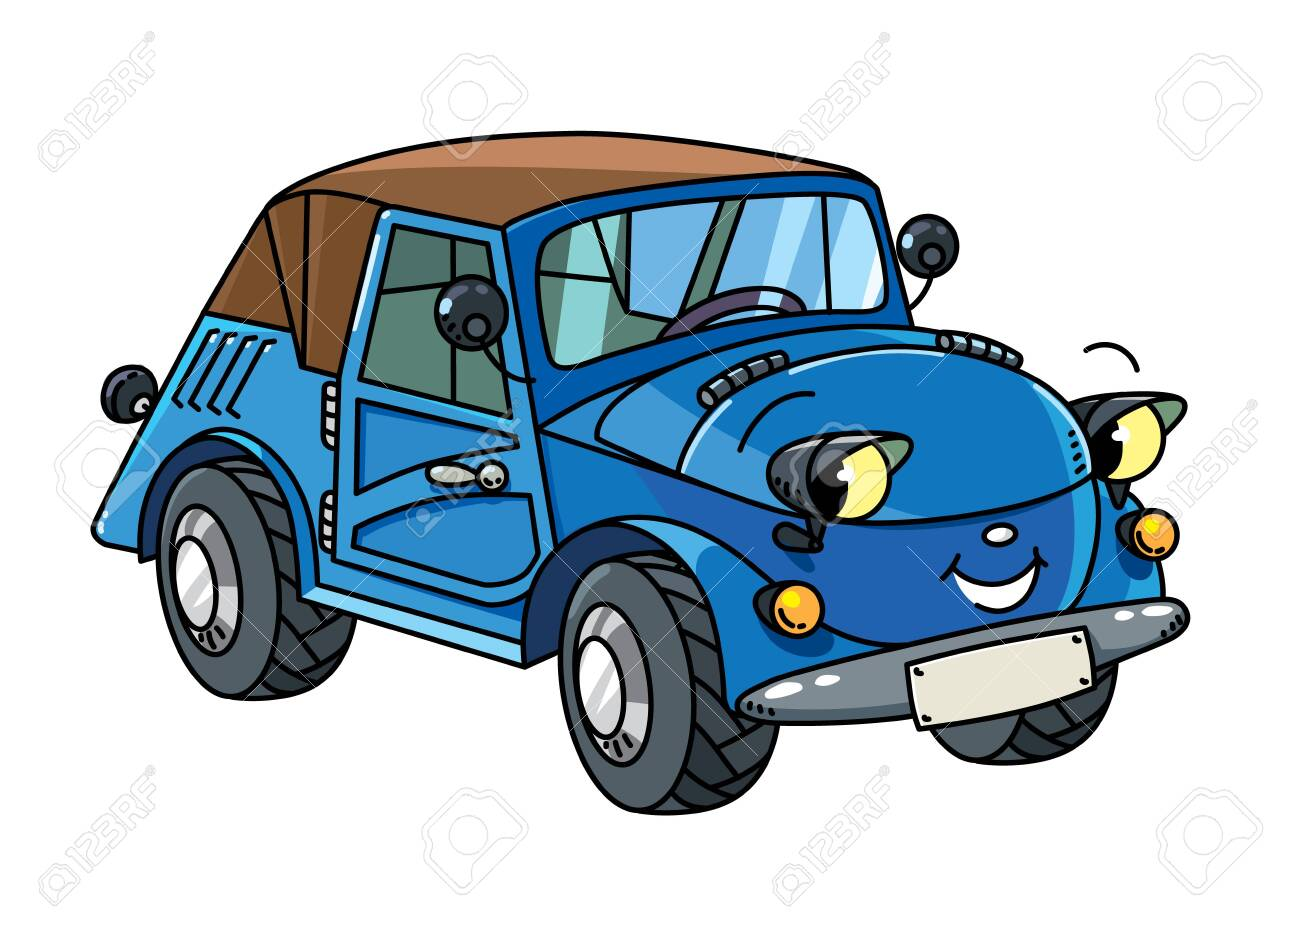 Funny small retro car with eyes and mouth. - 158052604